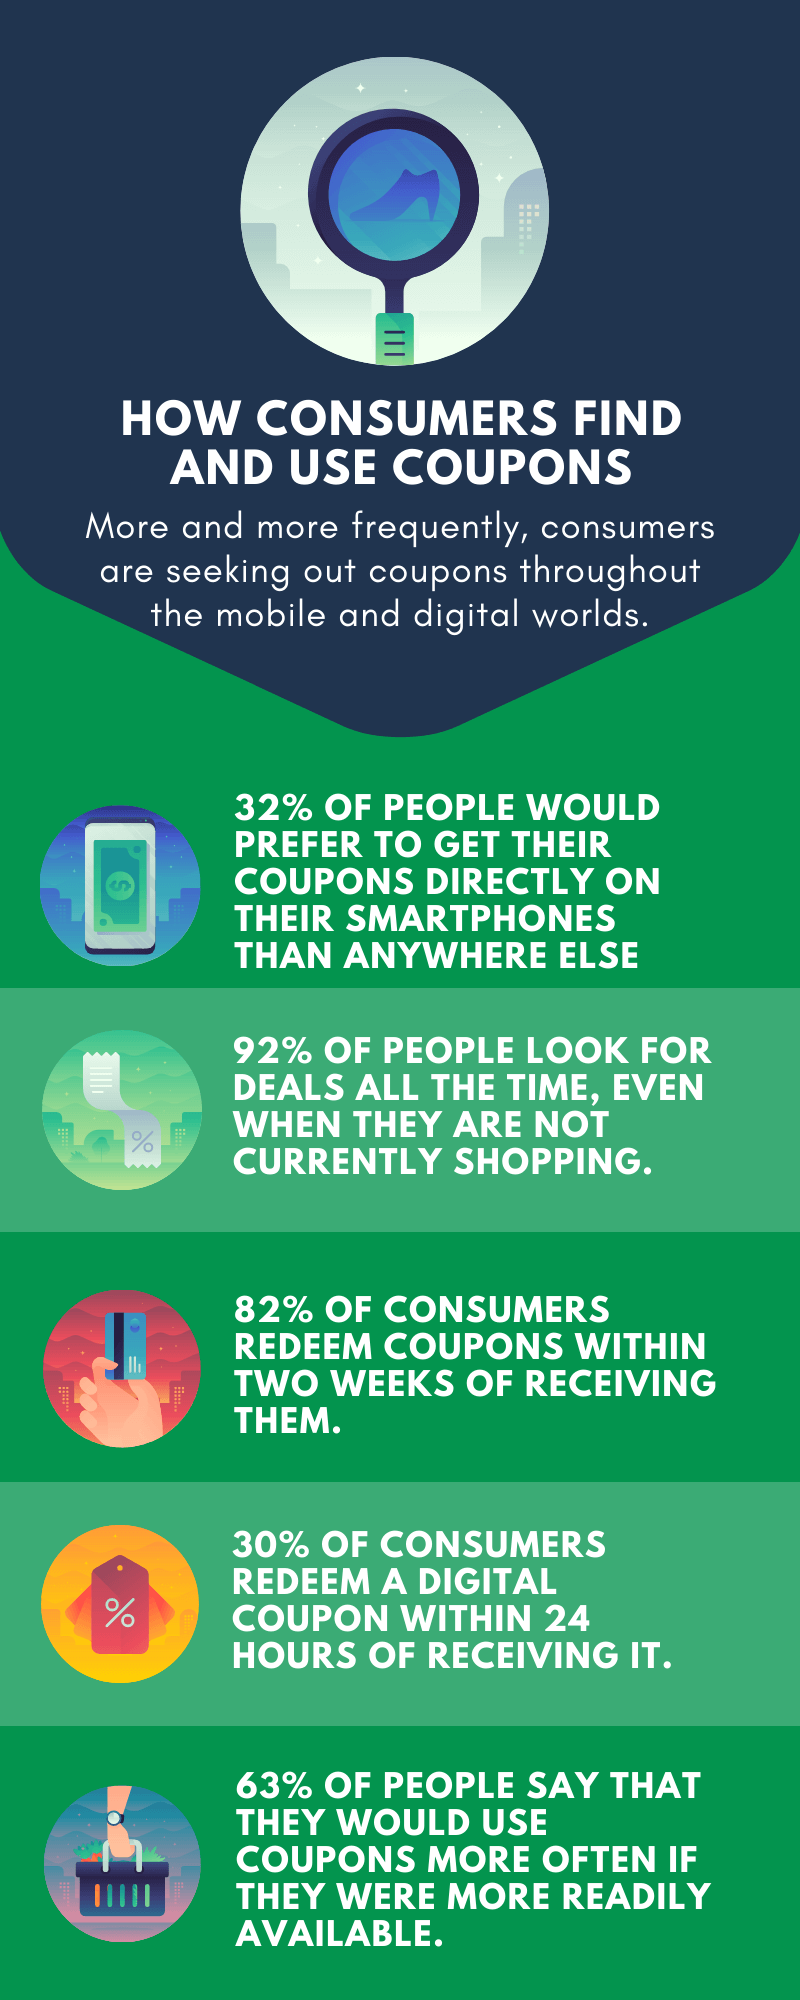 How Consumers Find and Use Coupons